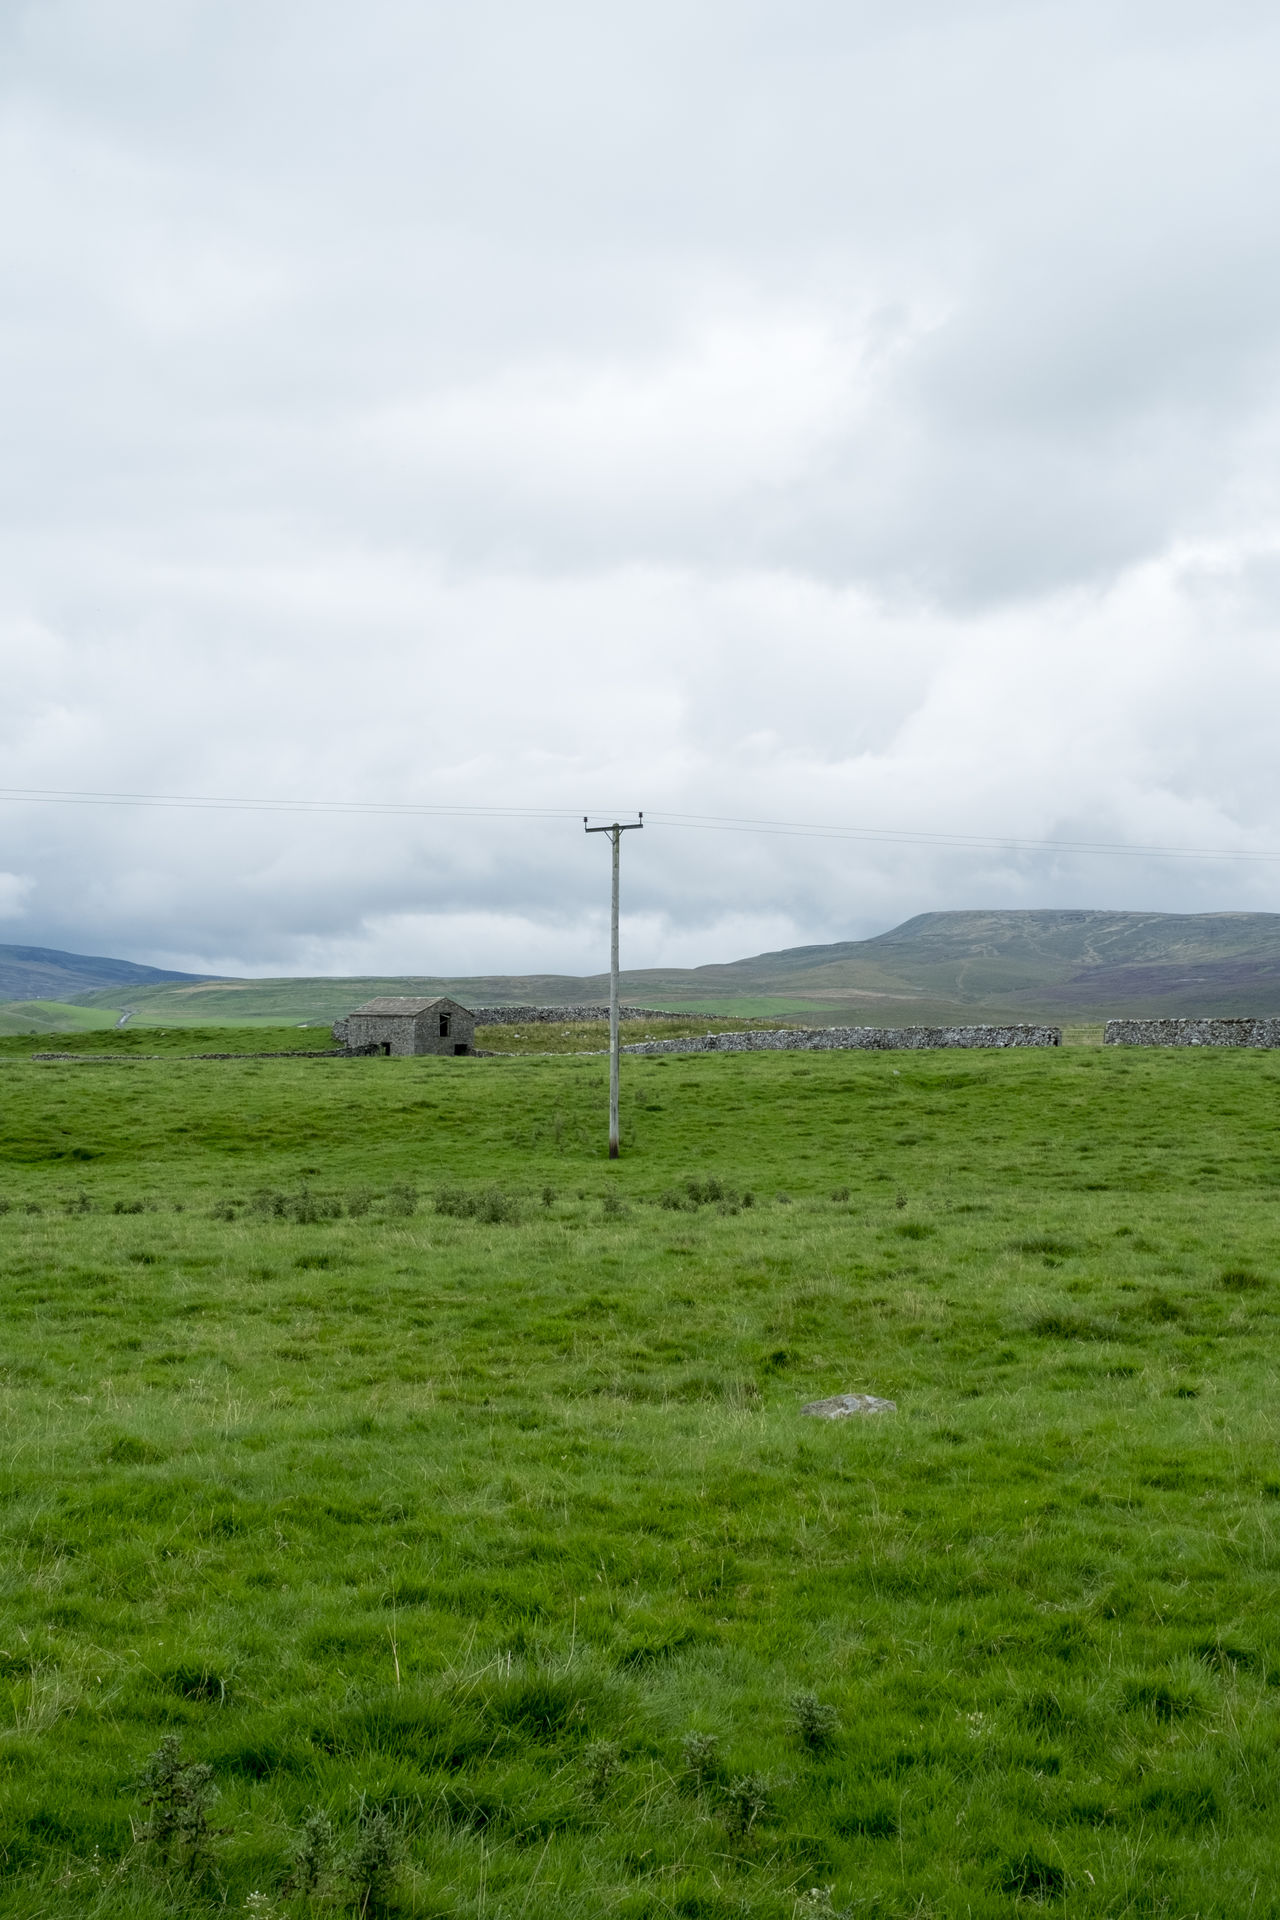 Settle, Yorkshire Dales Beauty In Nature Day Grass Hiking Landscape Meadow Nature Outdoors Scenic Scenics Tranquility Tree Trees Walking Yorkshire Yorkshire Dales Power Line  Cottage